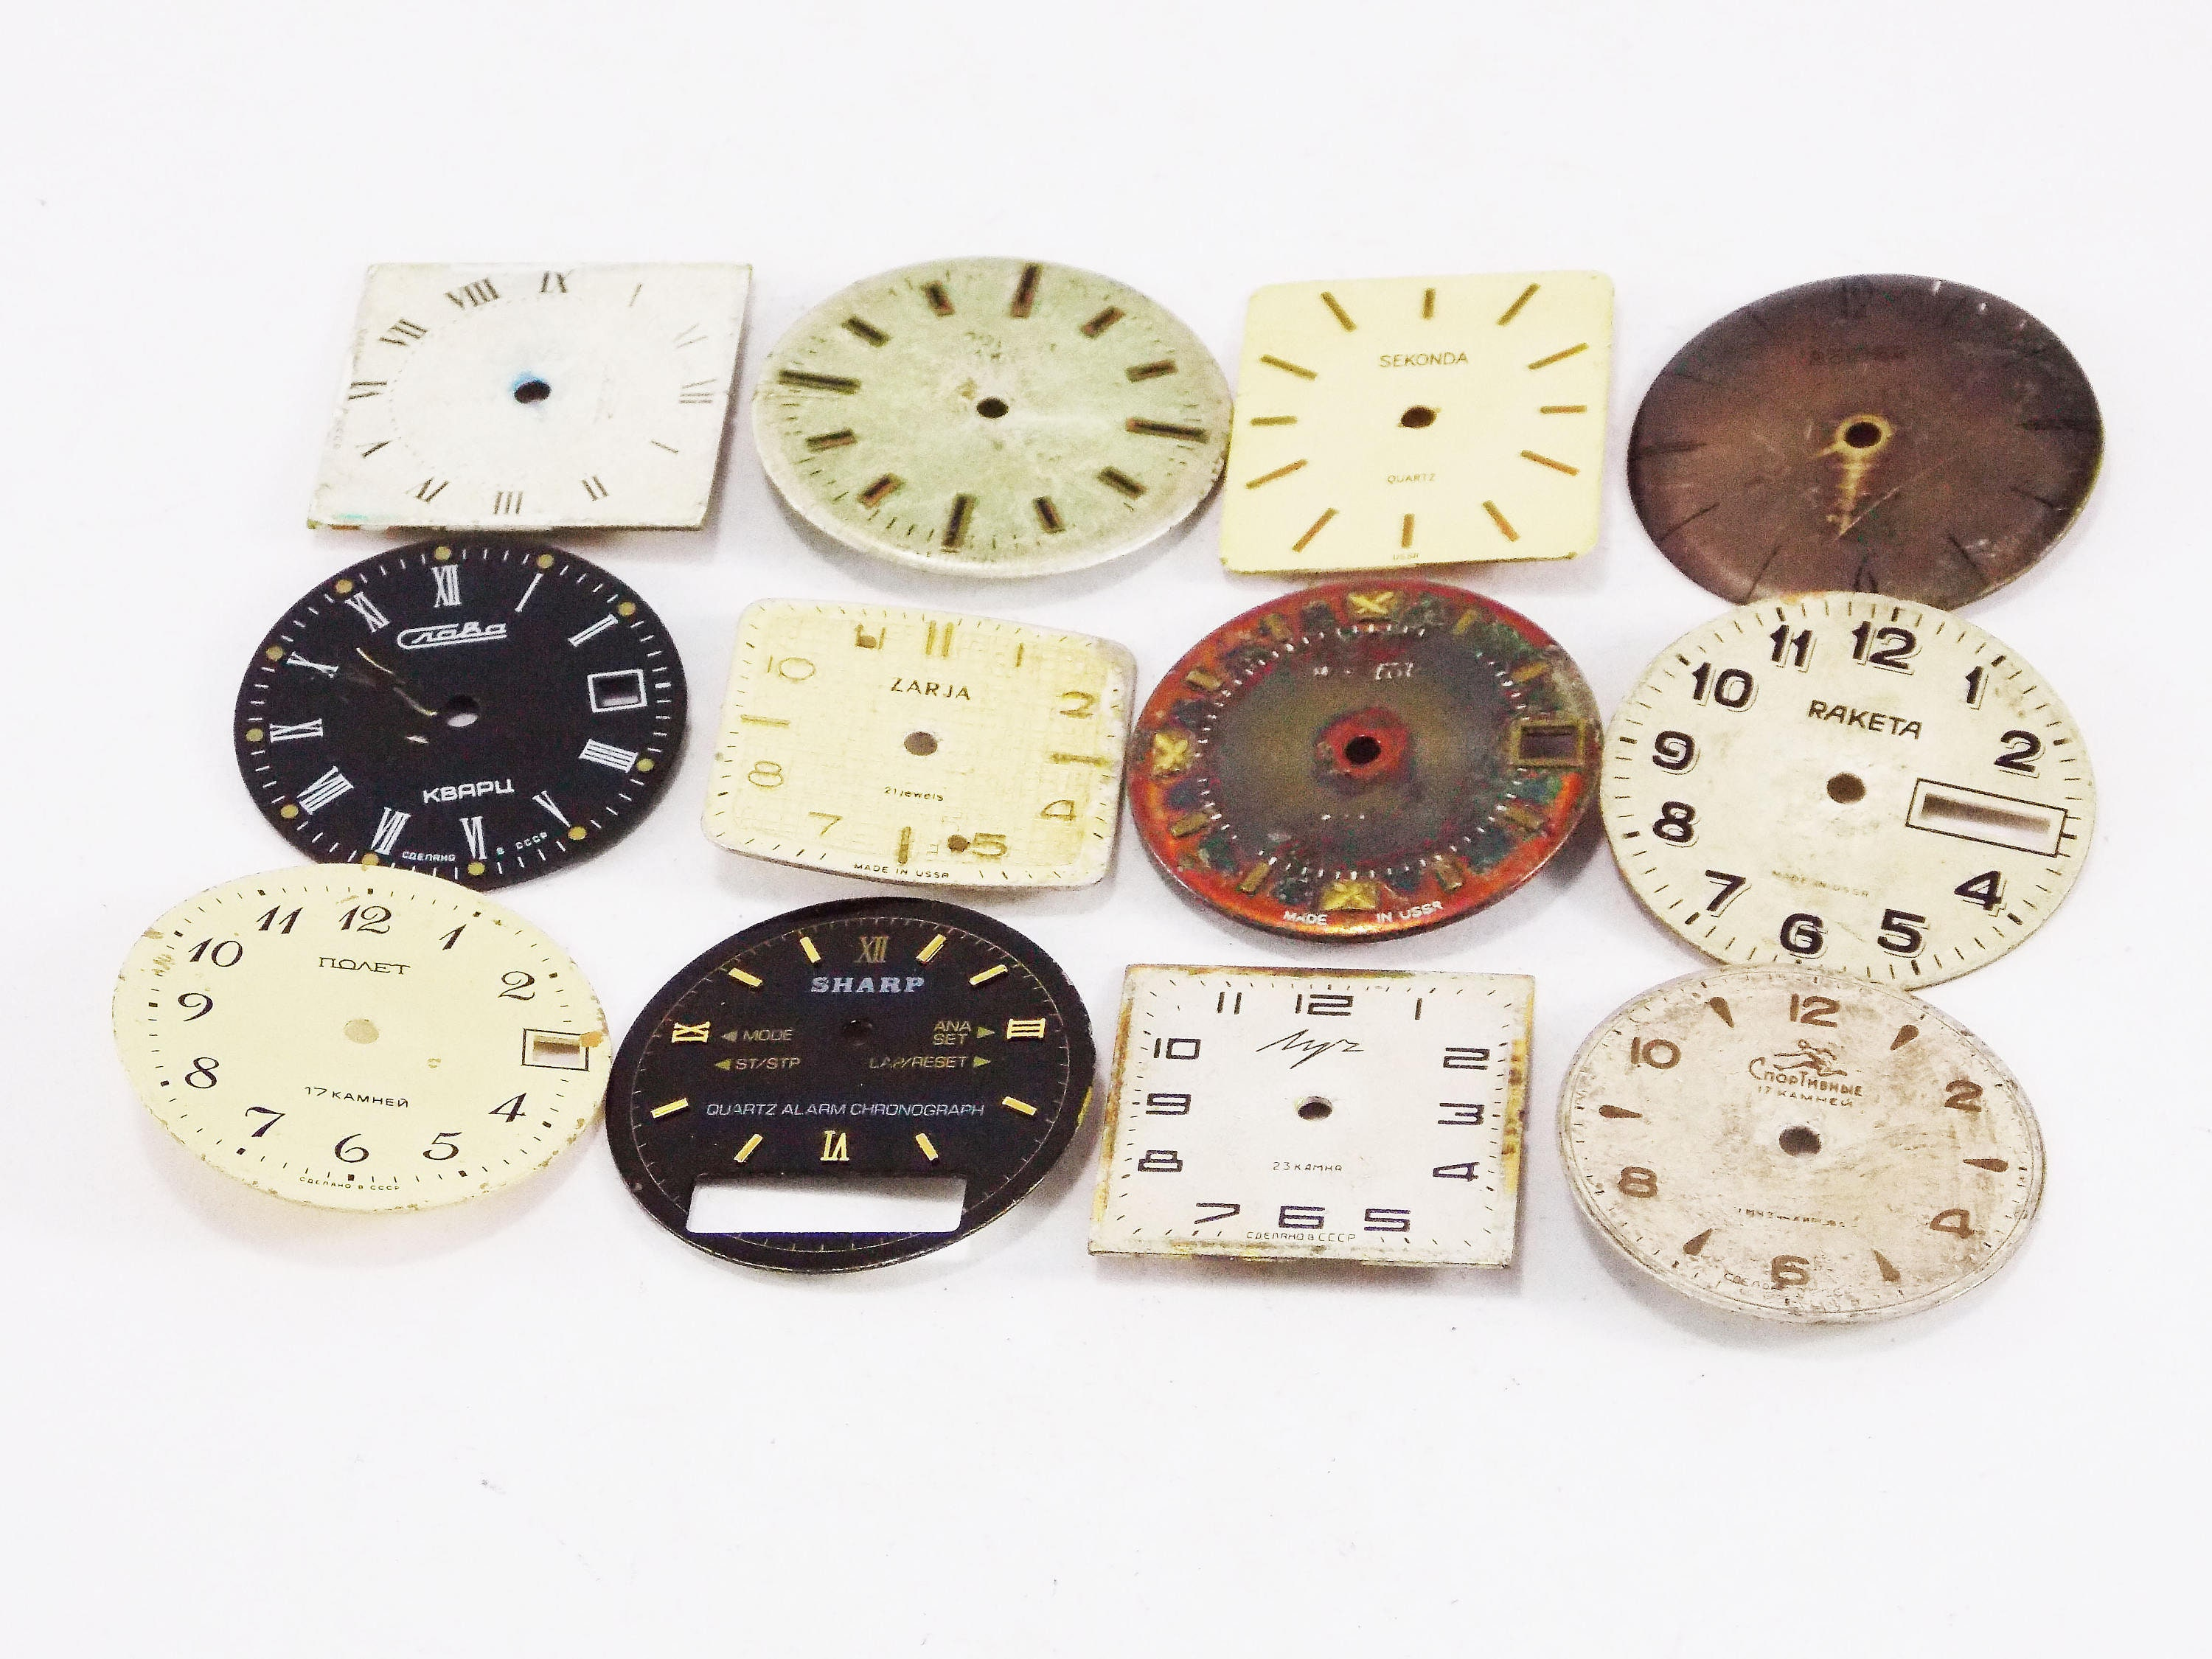 Watch dials clock Face Steampunk supplies Unisex assorted charms face  circles decor scrapbooking collage clock retro watches old face parts